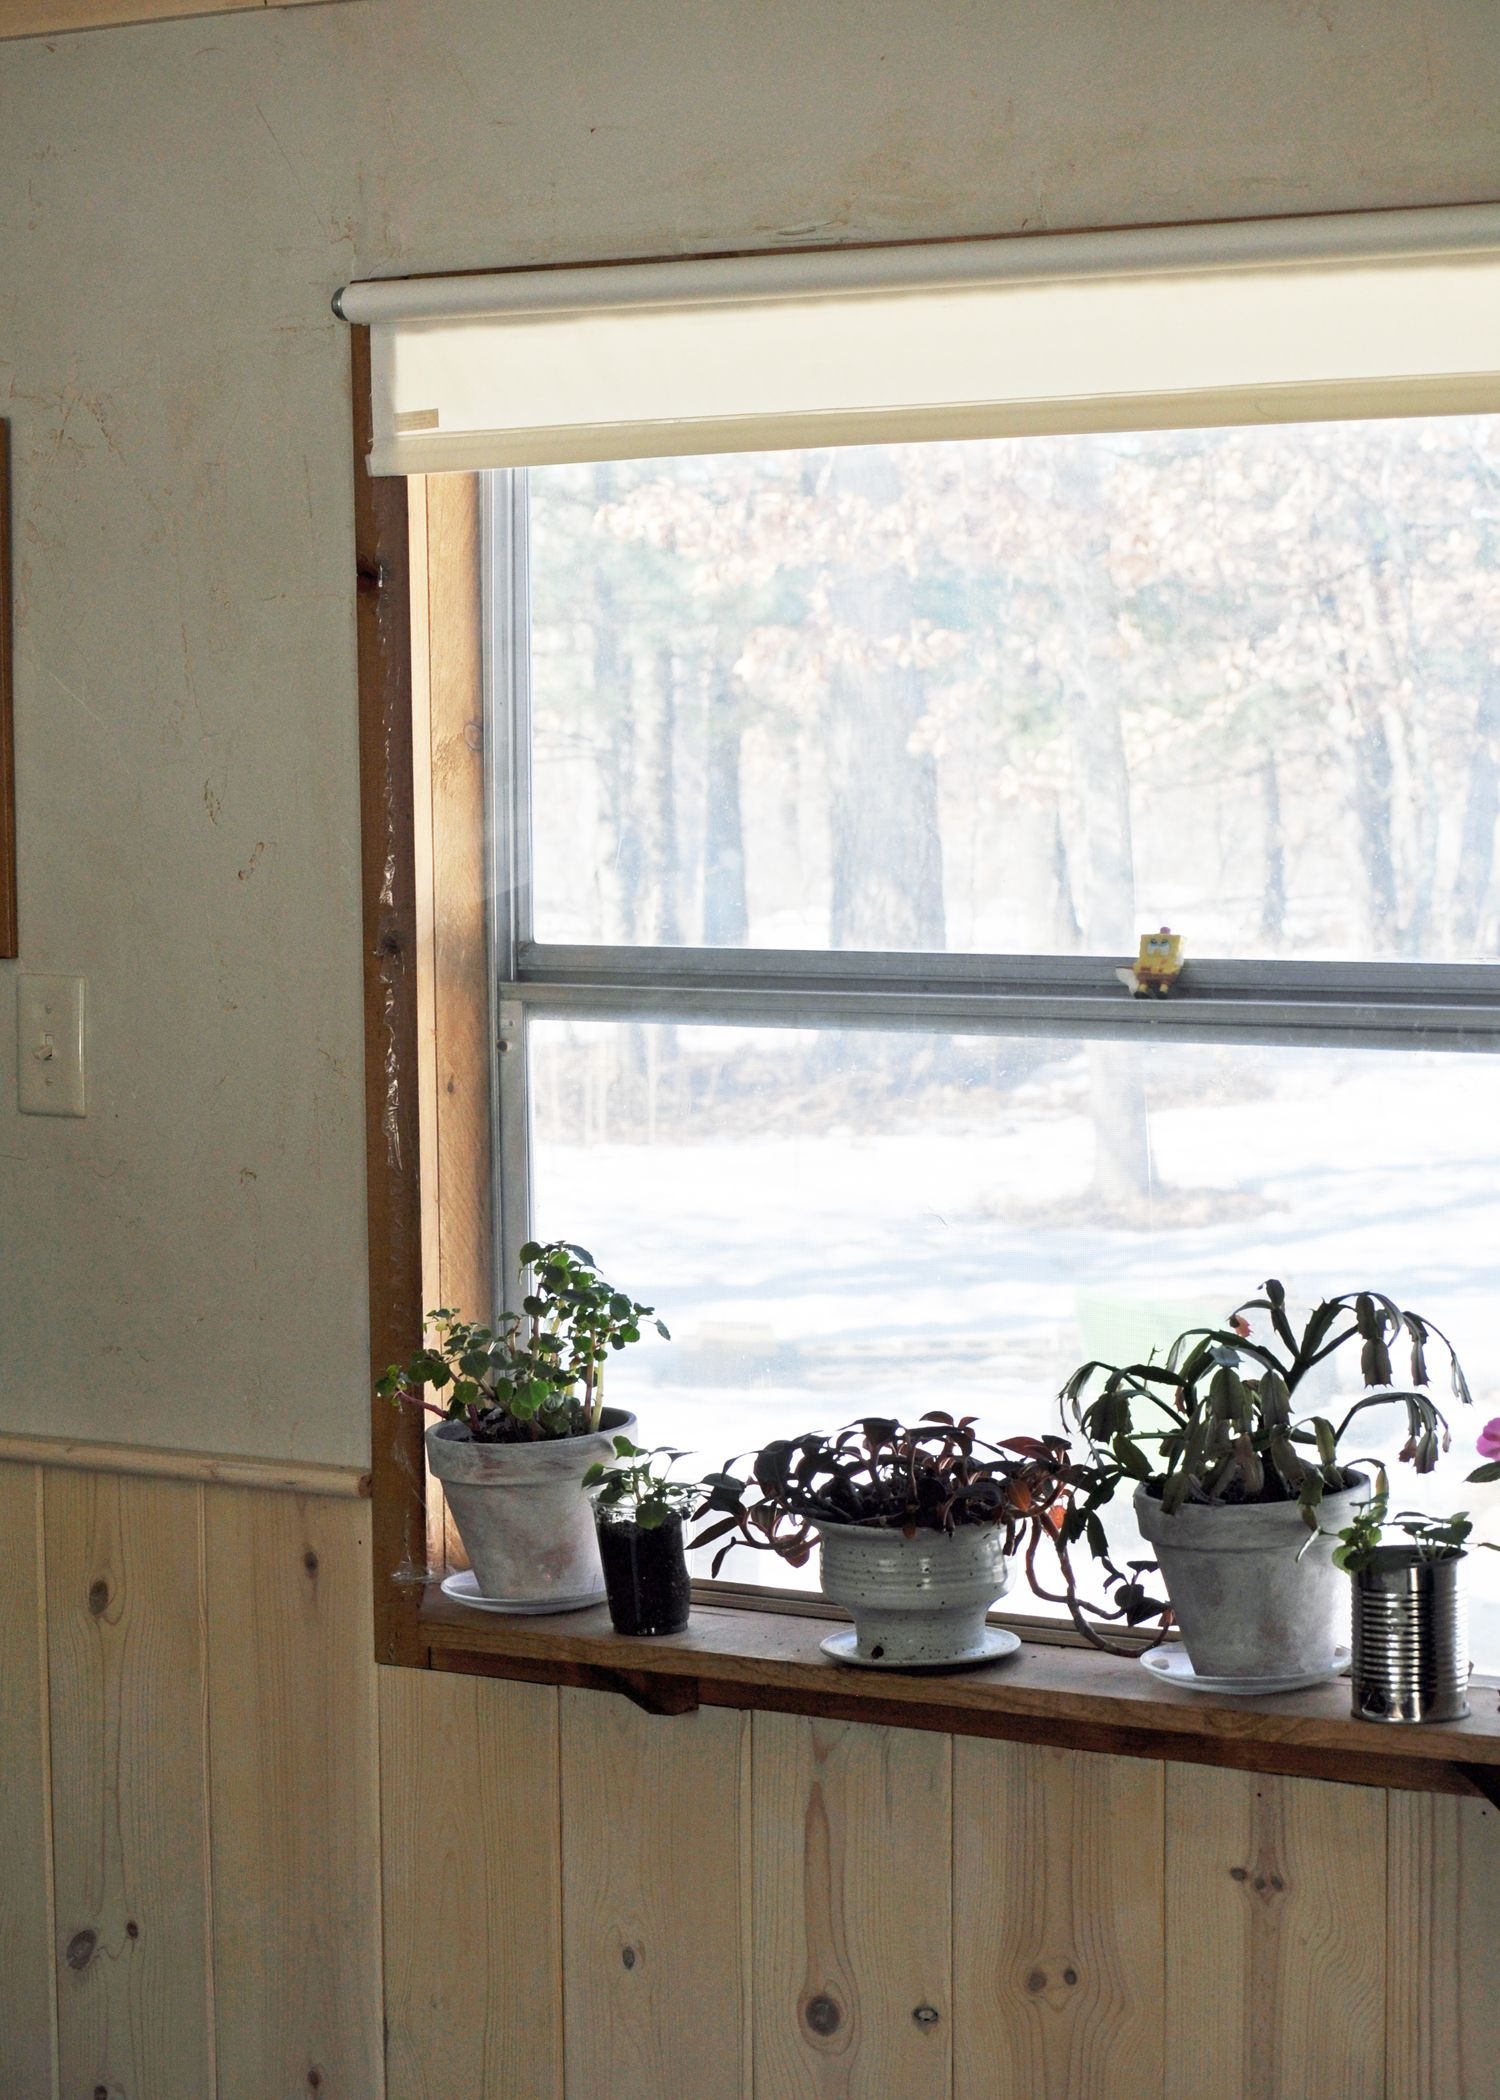 How Much Do Triple Wide Mobile Homes Cost >> Old, awful, drafty, original mobile home windows (single